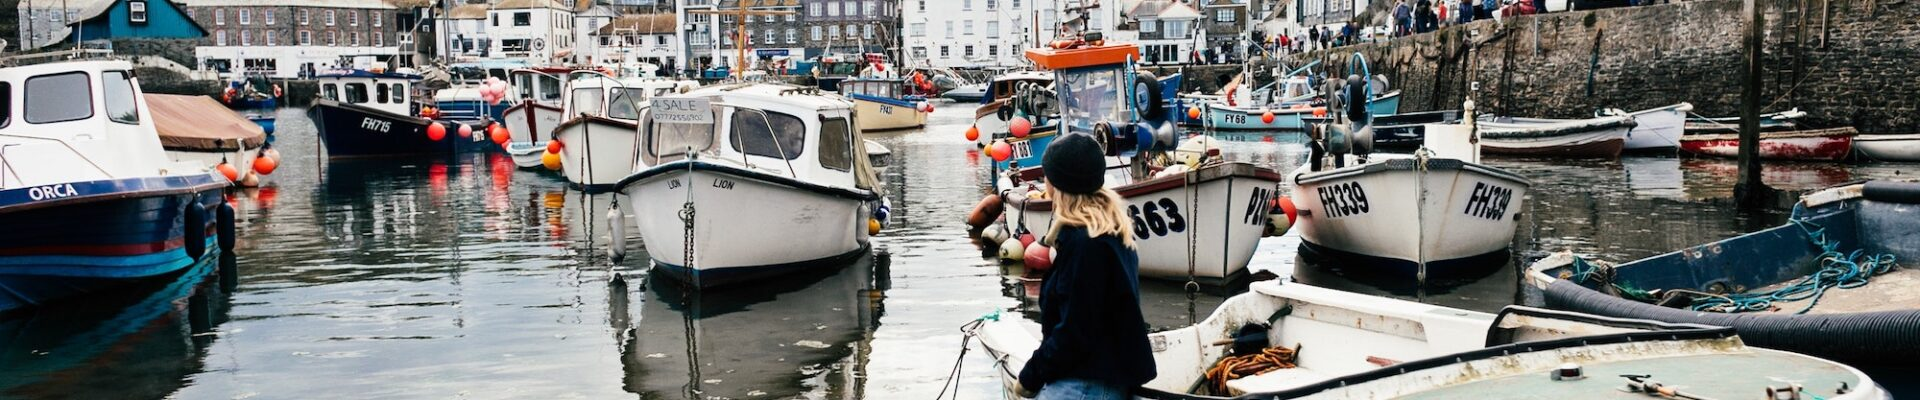 Portleven harbour boats     Top 5 incredible places to visit on your Cornwall staycation   Travel Tips   Elle Blonde Luxury Lifestyle Destination Blog